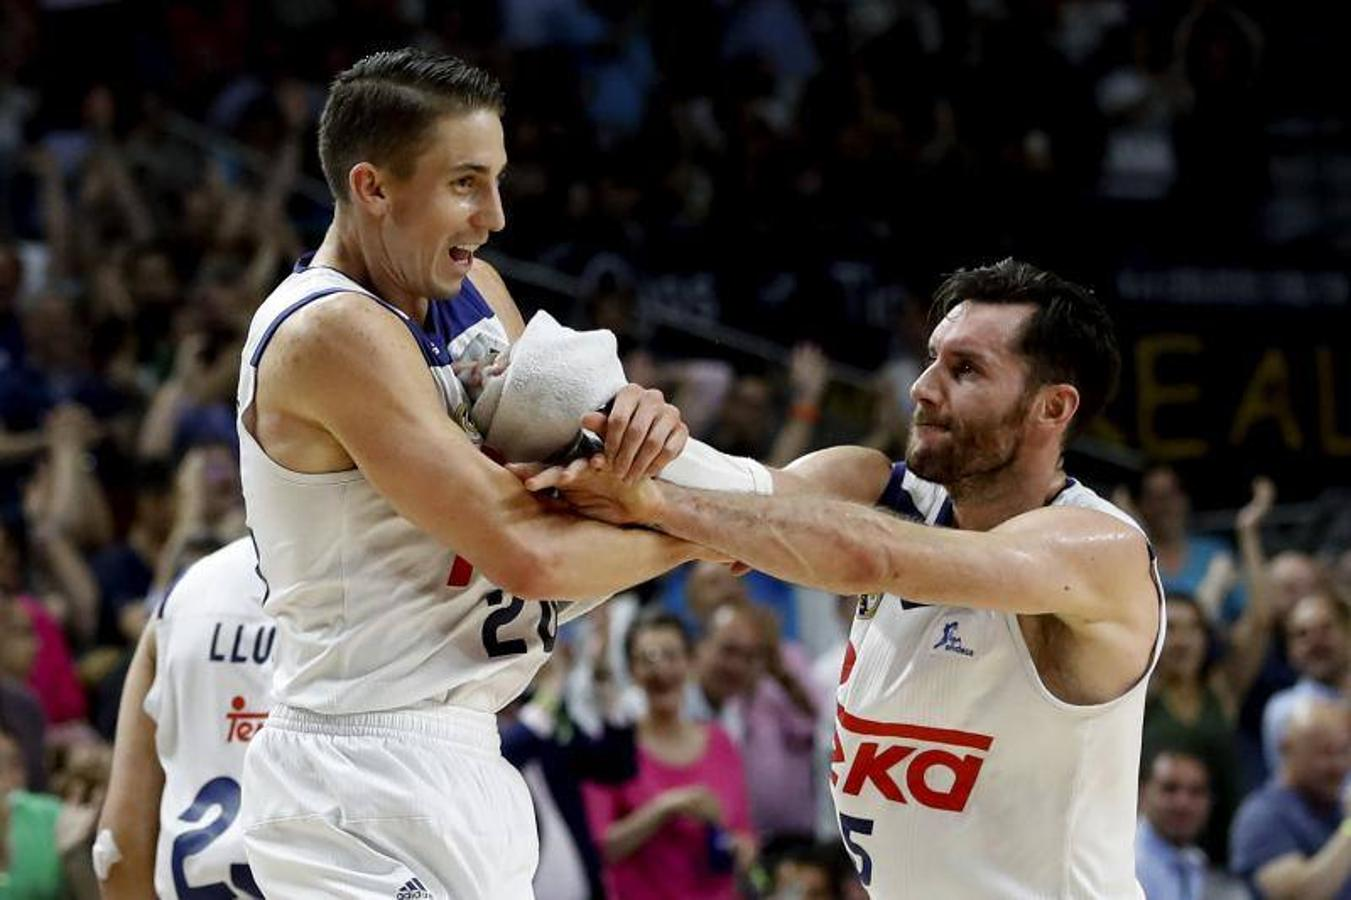 El segundo duelo Real Madrid-Unicaja, en fotos